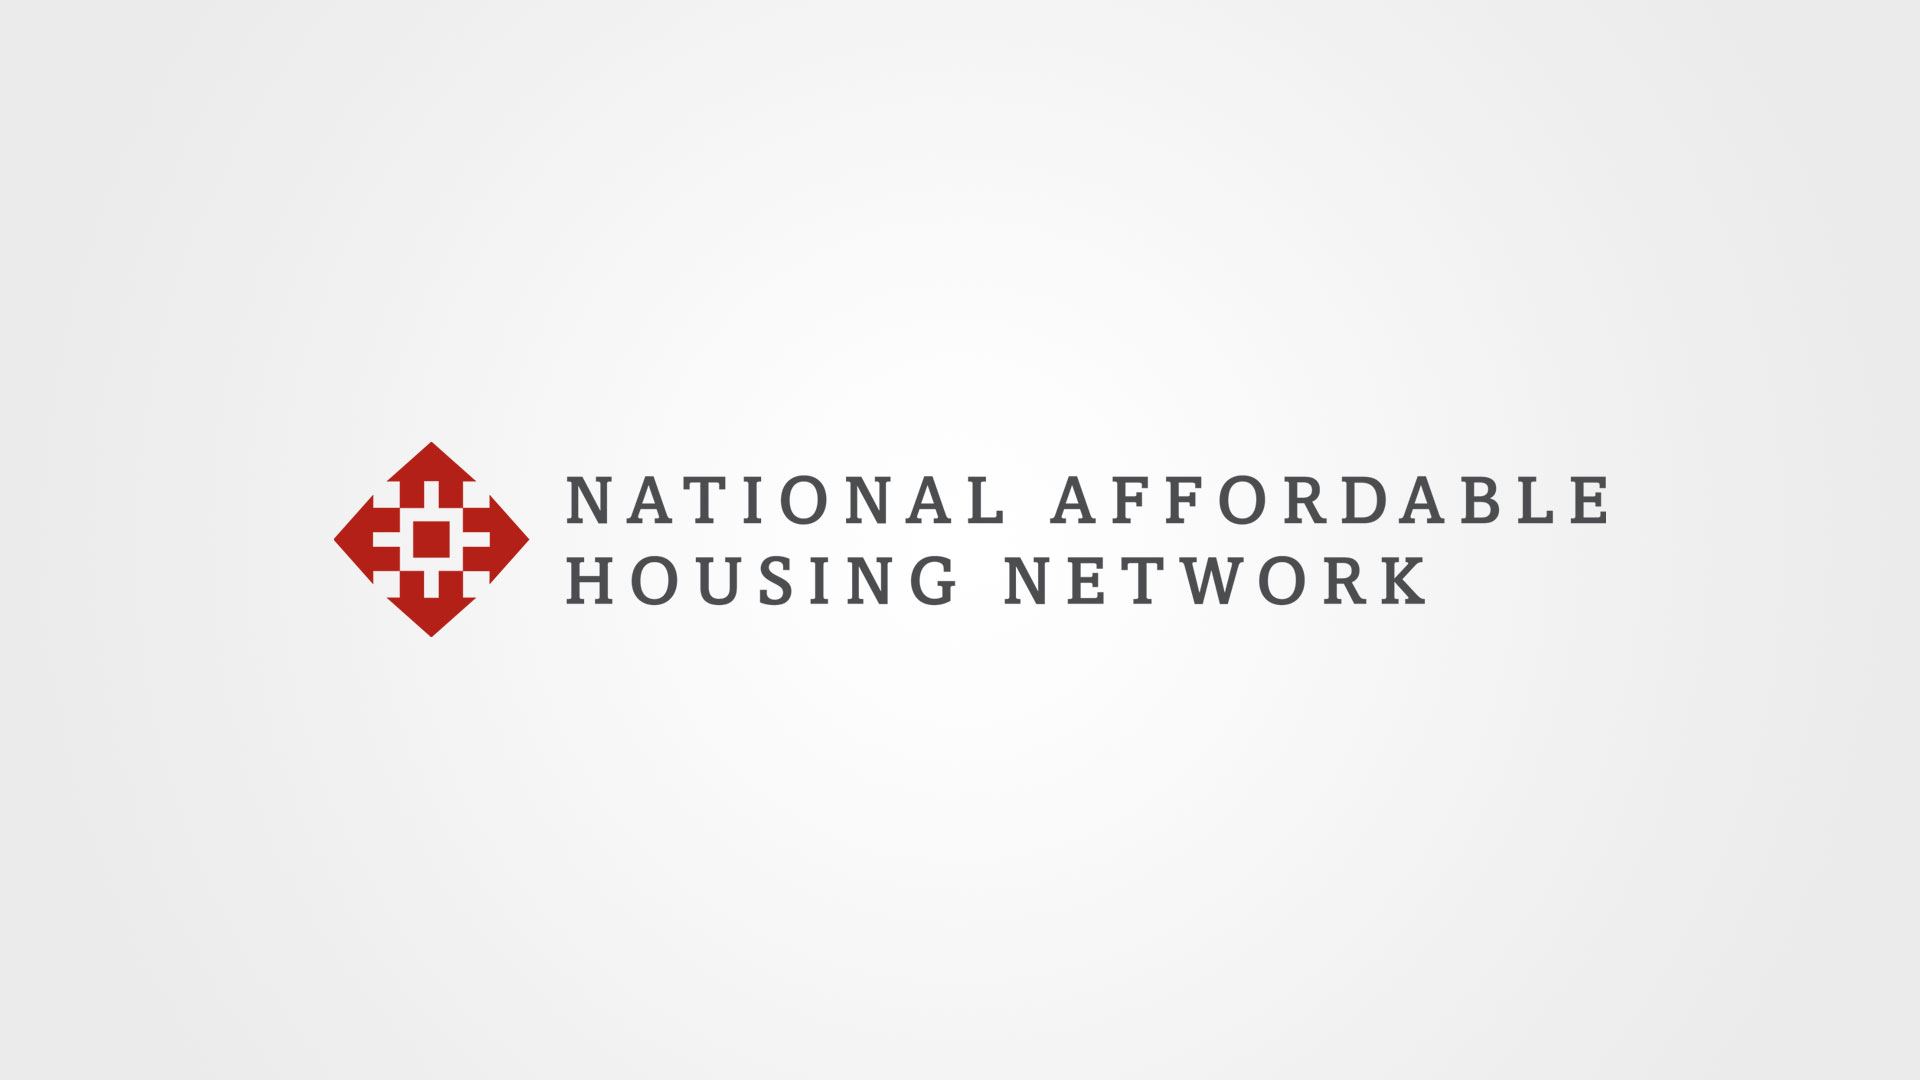 National Affordable Housing Network